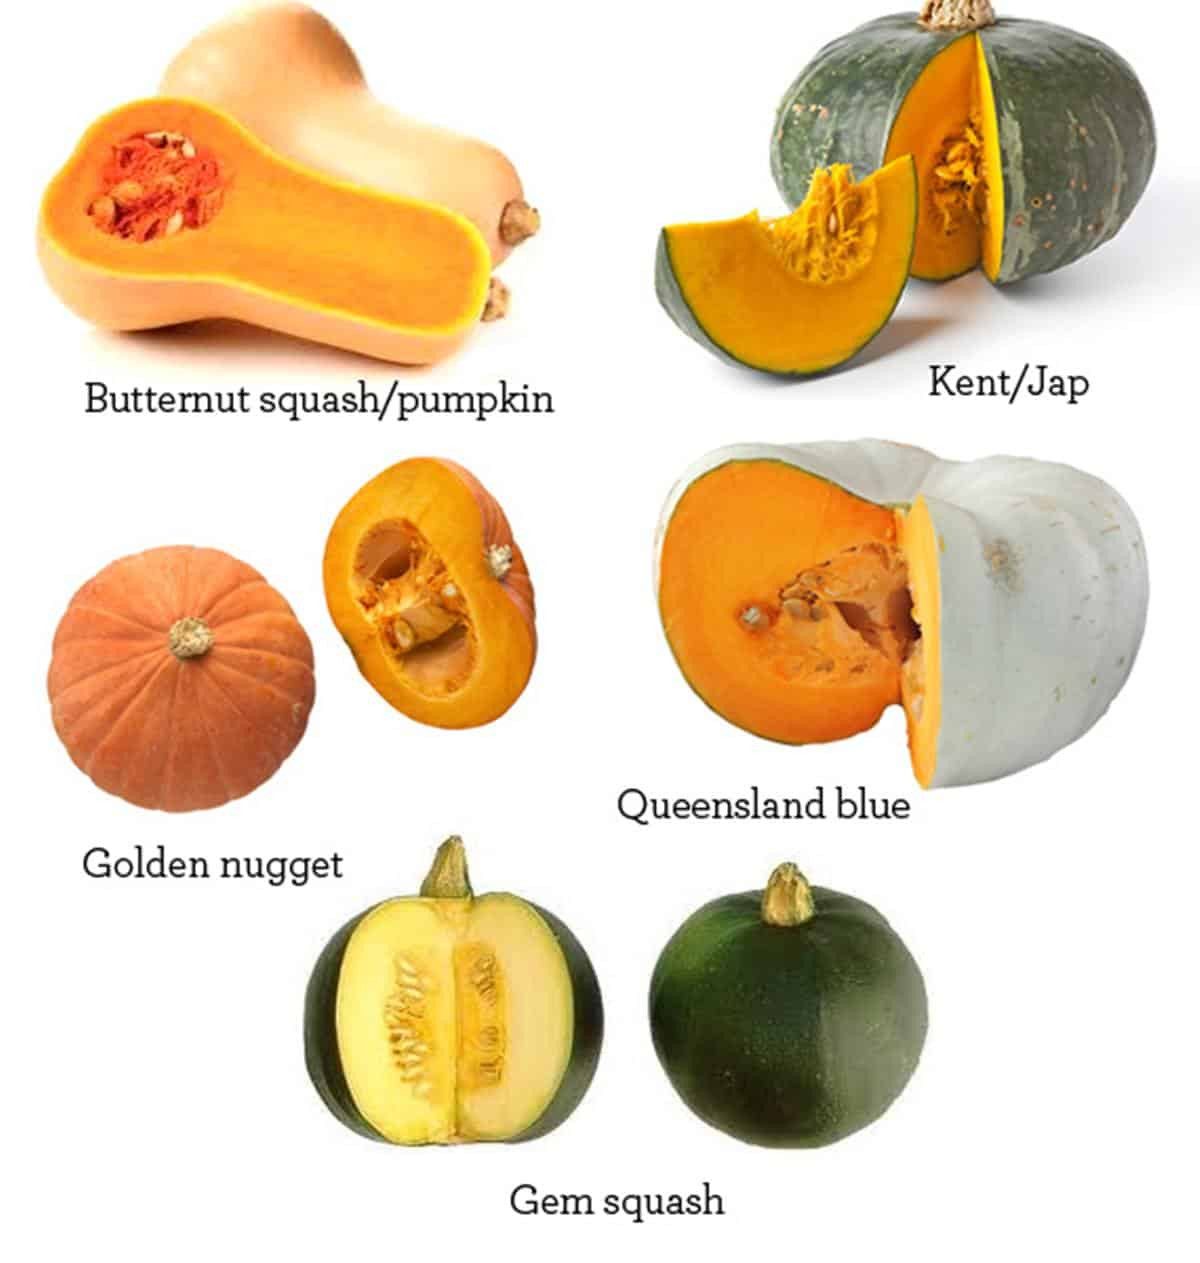 Fruits and Vegetables Vocabulary in English 9